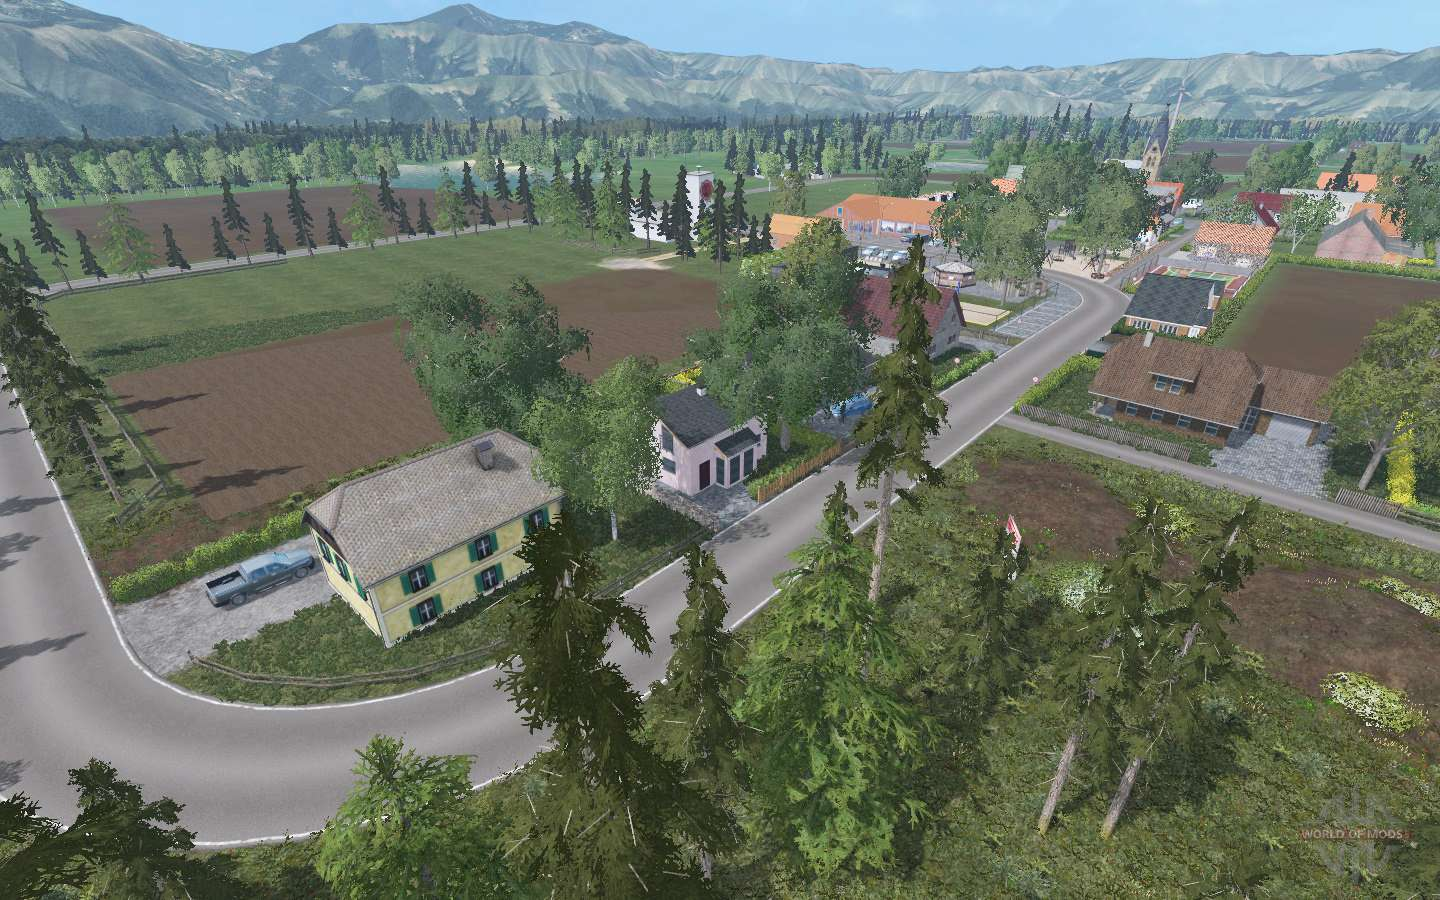 300667-FarmingSimulator2015Game-2018-11-04-00-53-55-533 Samara Wheel Of Time Map on map of mosul, map of skopje, map of poas volcano, map of komsomolsk, map of sadr city, map of rincon de la vieja, map of south andros, map of punta uva, map of st croix island, map of petrozavodsk, map of erbil, map of osa, map of sanaa, map of ternopil, map of kuban, map of barra honda, map of wrangel island, map of belgorod, map of stara zagora, map of samarra,